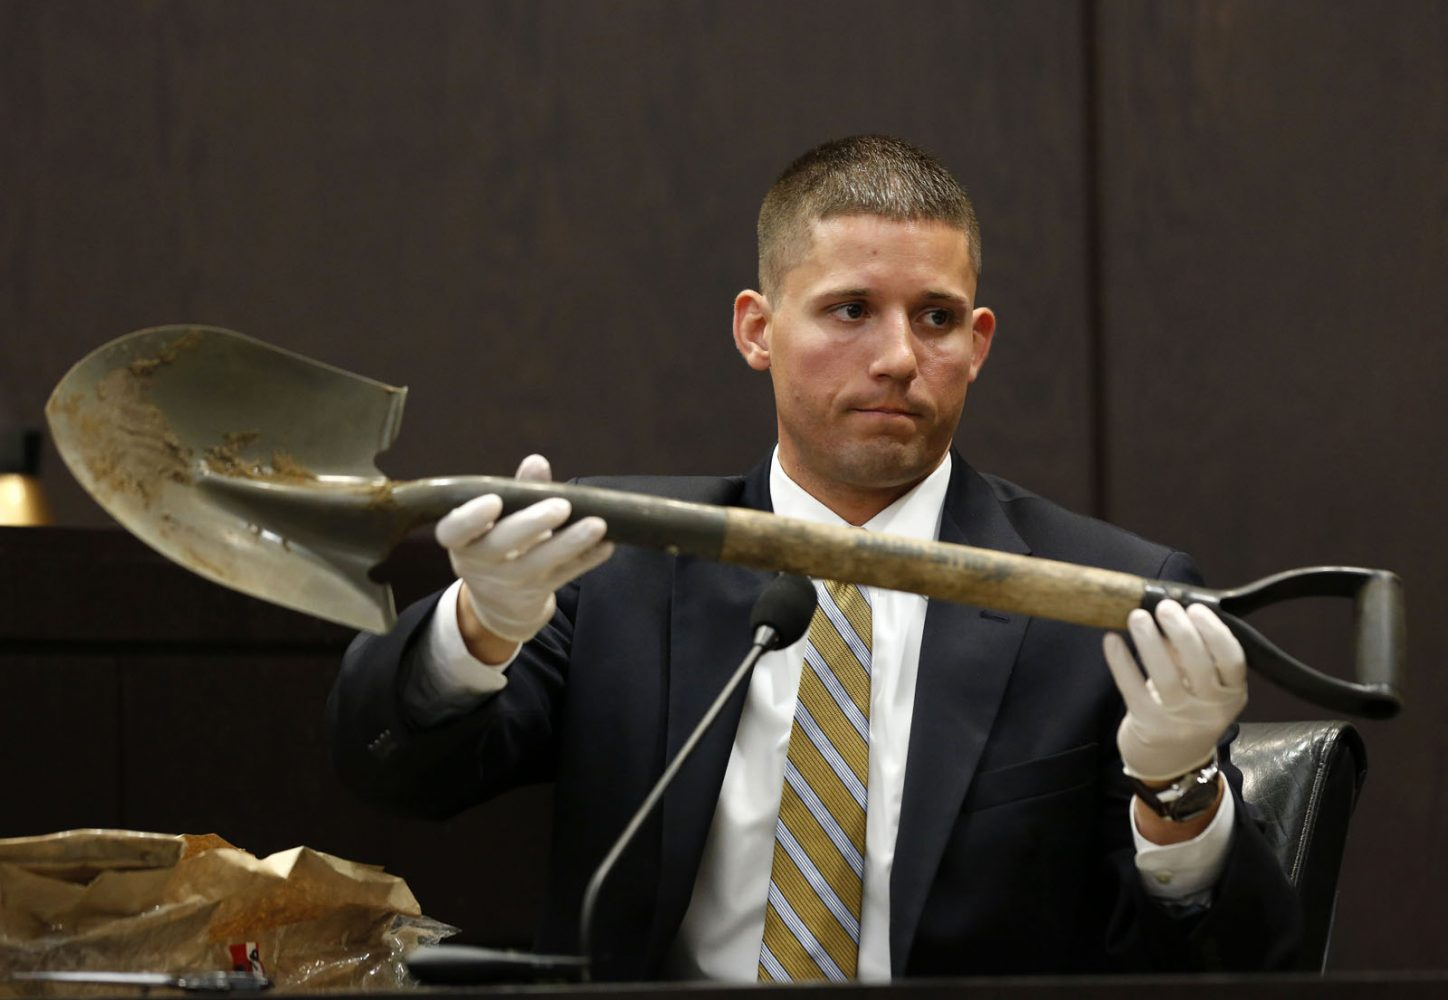 Assistant State Attorney Christopher Elsey shows the jury the shovel that was found at Spyglass apartments during Pedro Bravo's murder trial in courtroom 1B of the Alachua County Criminal Justice Center Thursday, August 14, 2014.  Bravo is accused of killing University of Florida student Christian Aguilar.  (Doug Finger/The Gainesville Sun/Pool)